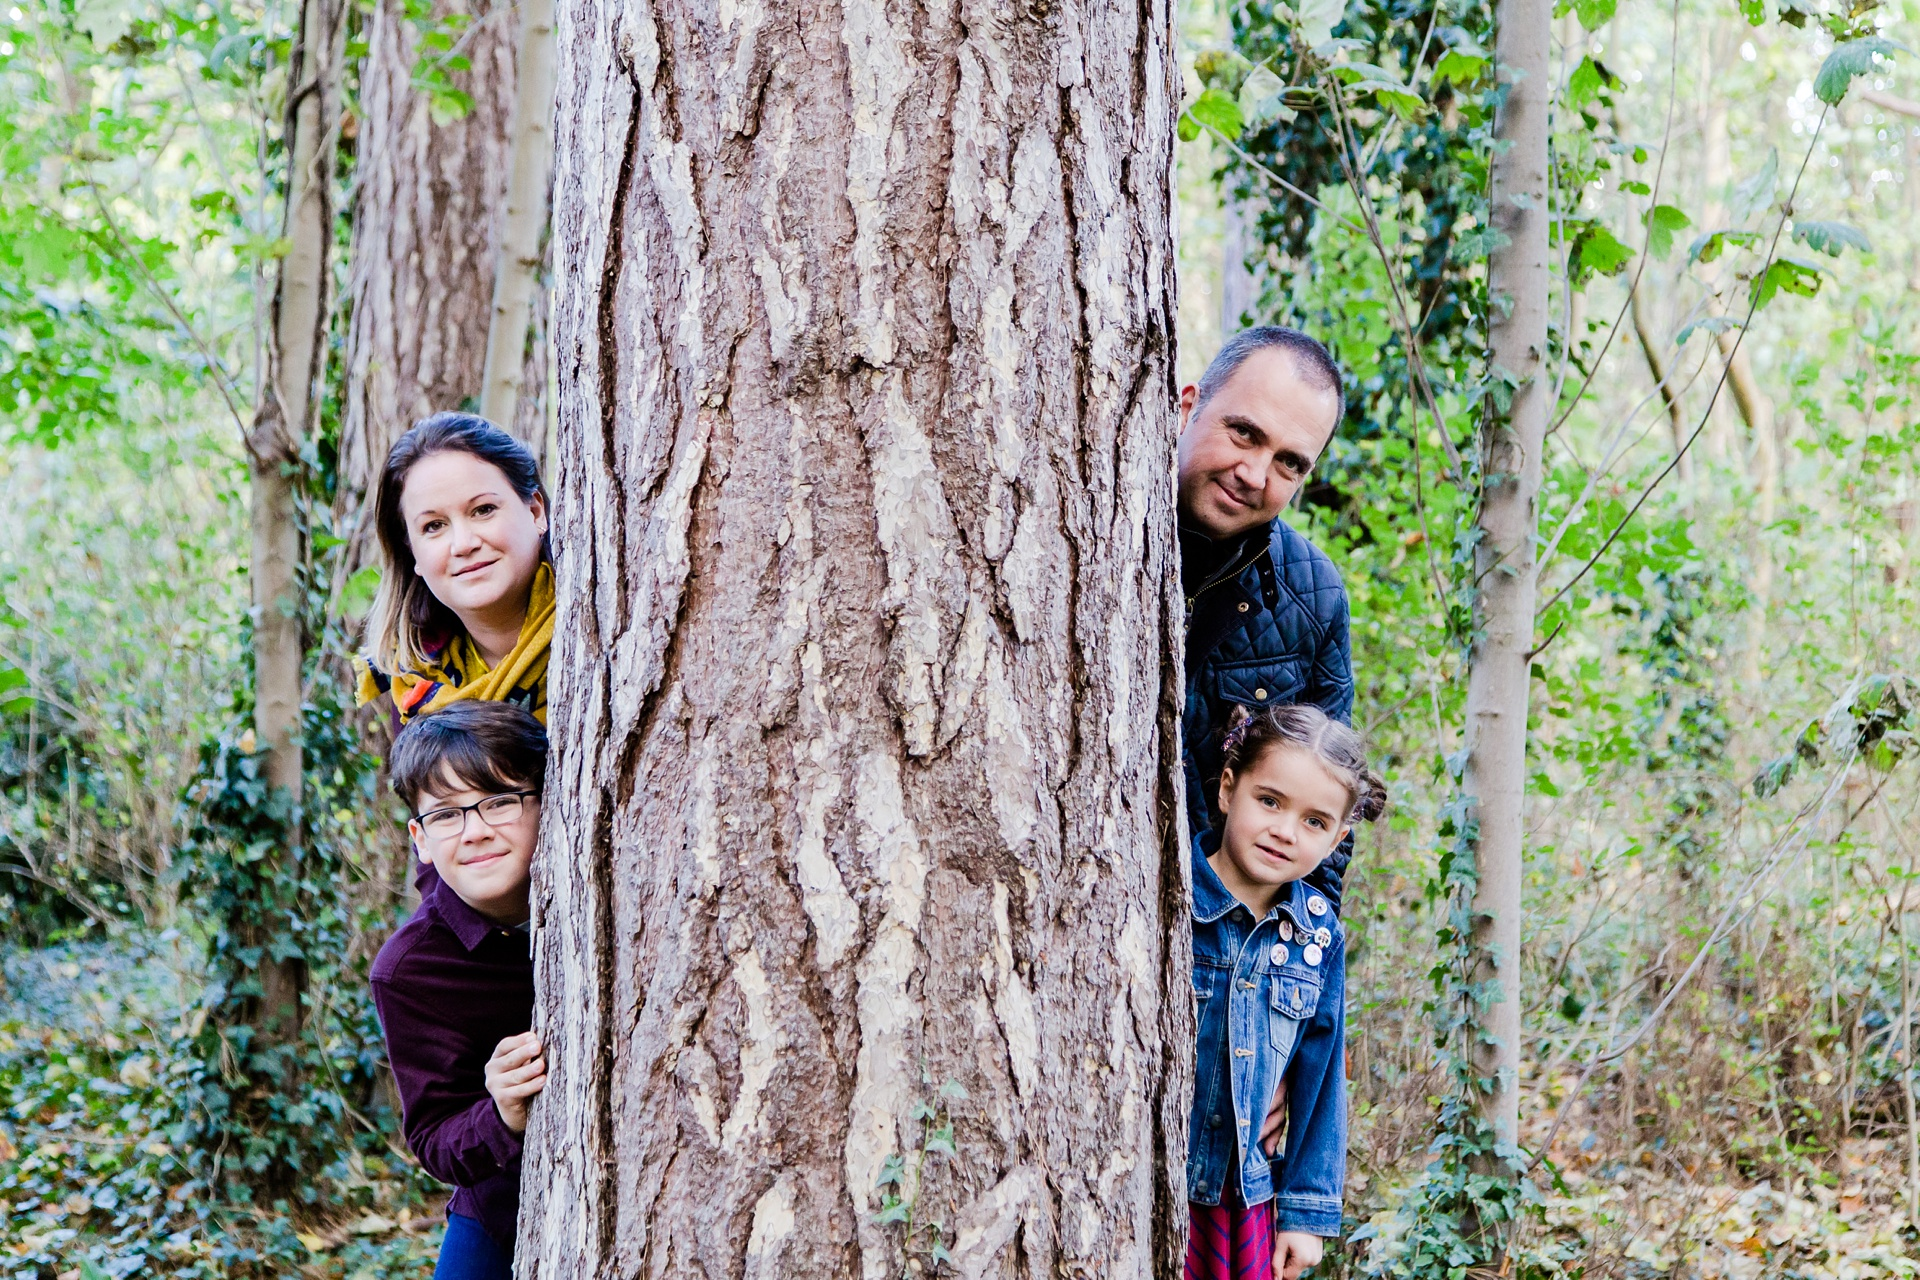 Family photo shoot hiding behind tree